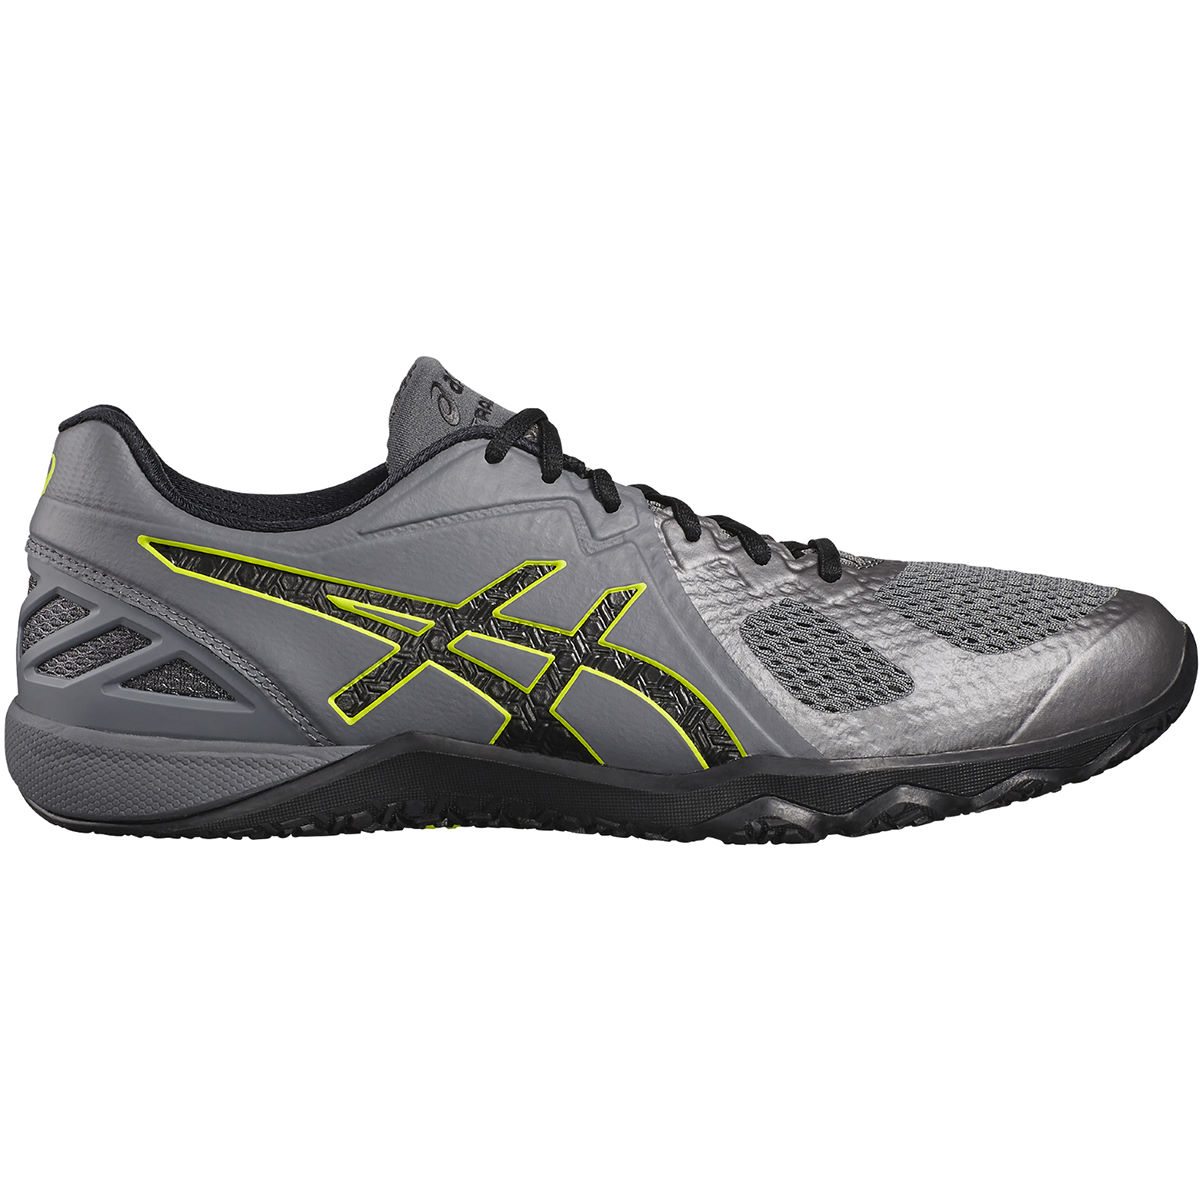 Chaussures Asics Conviction X - UK 11 Carbon/Black/Energy